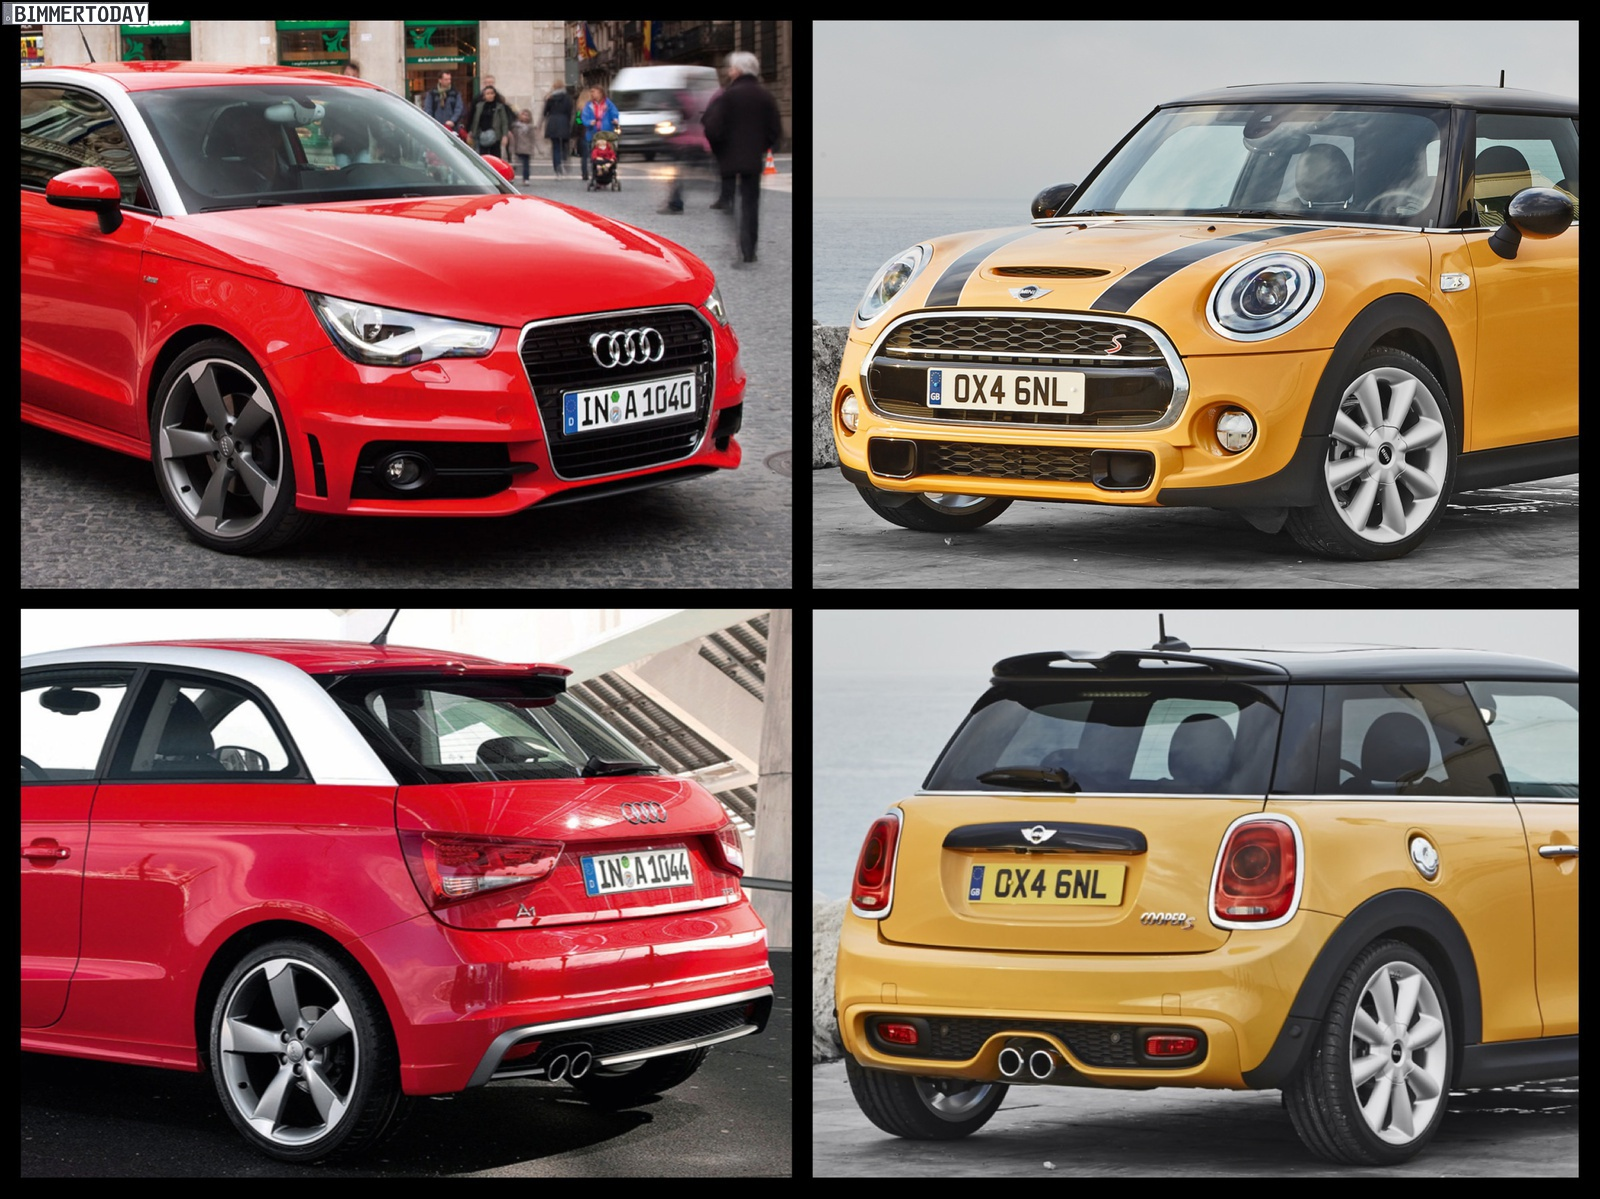 F56 Mini Cooper S Vs Audi A1 S Line Photo Comparison